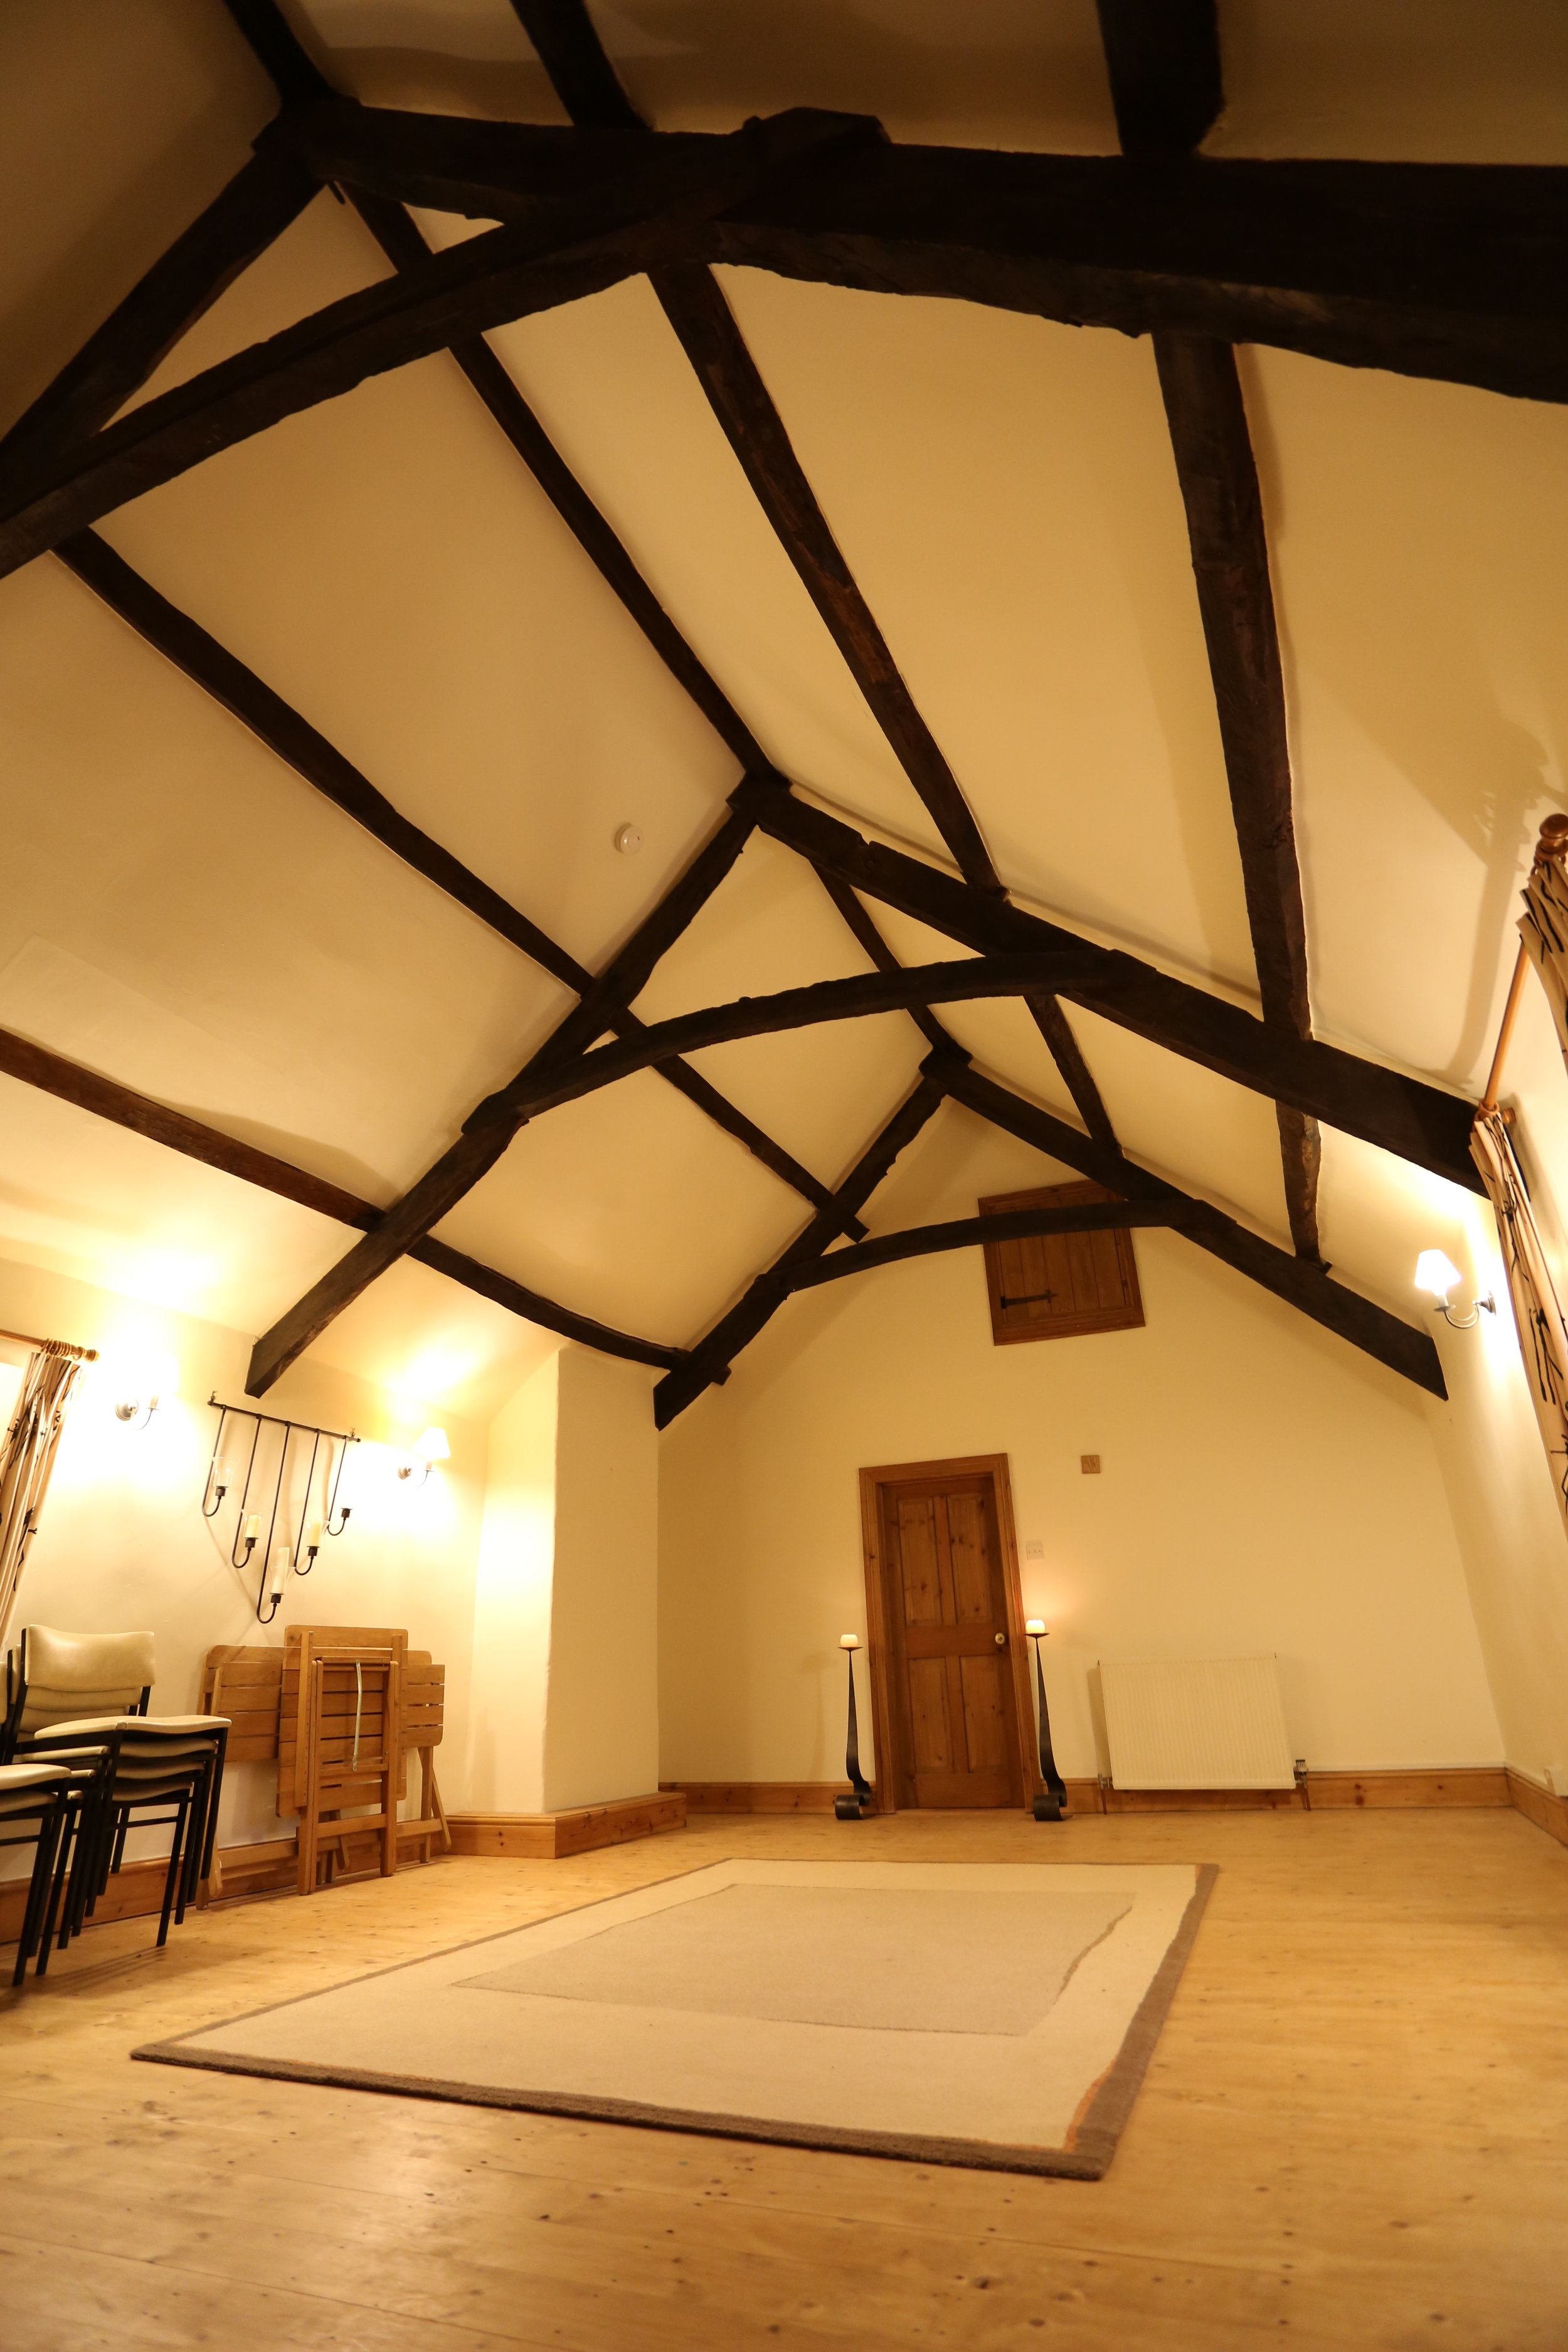 The Upper Room - a meeting place for groups of up to 25